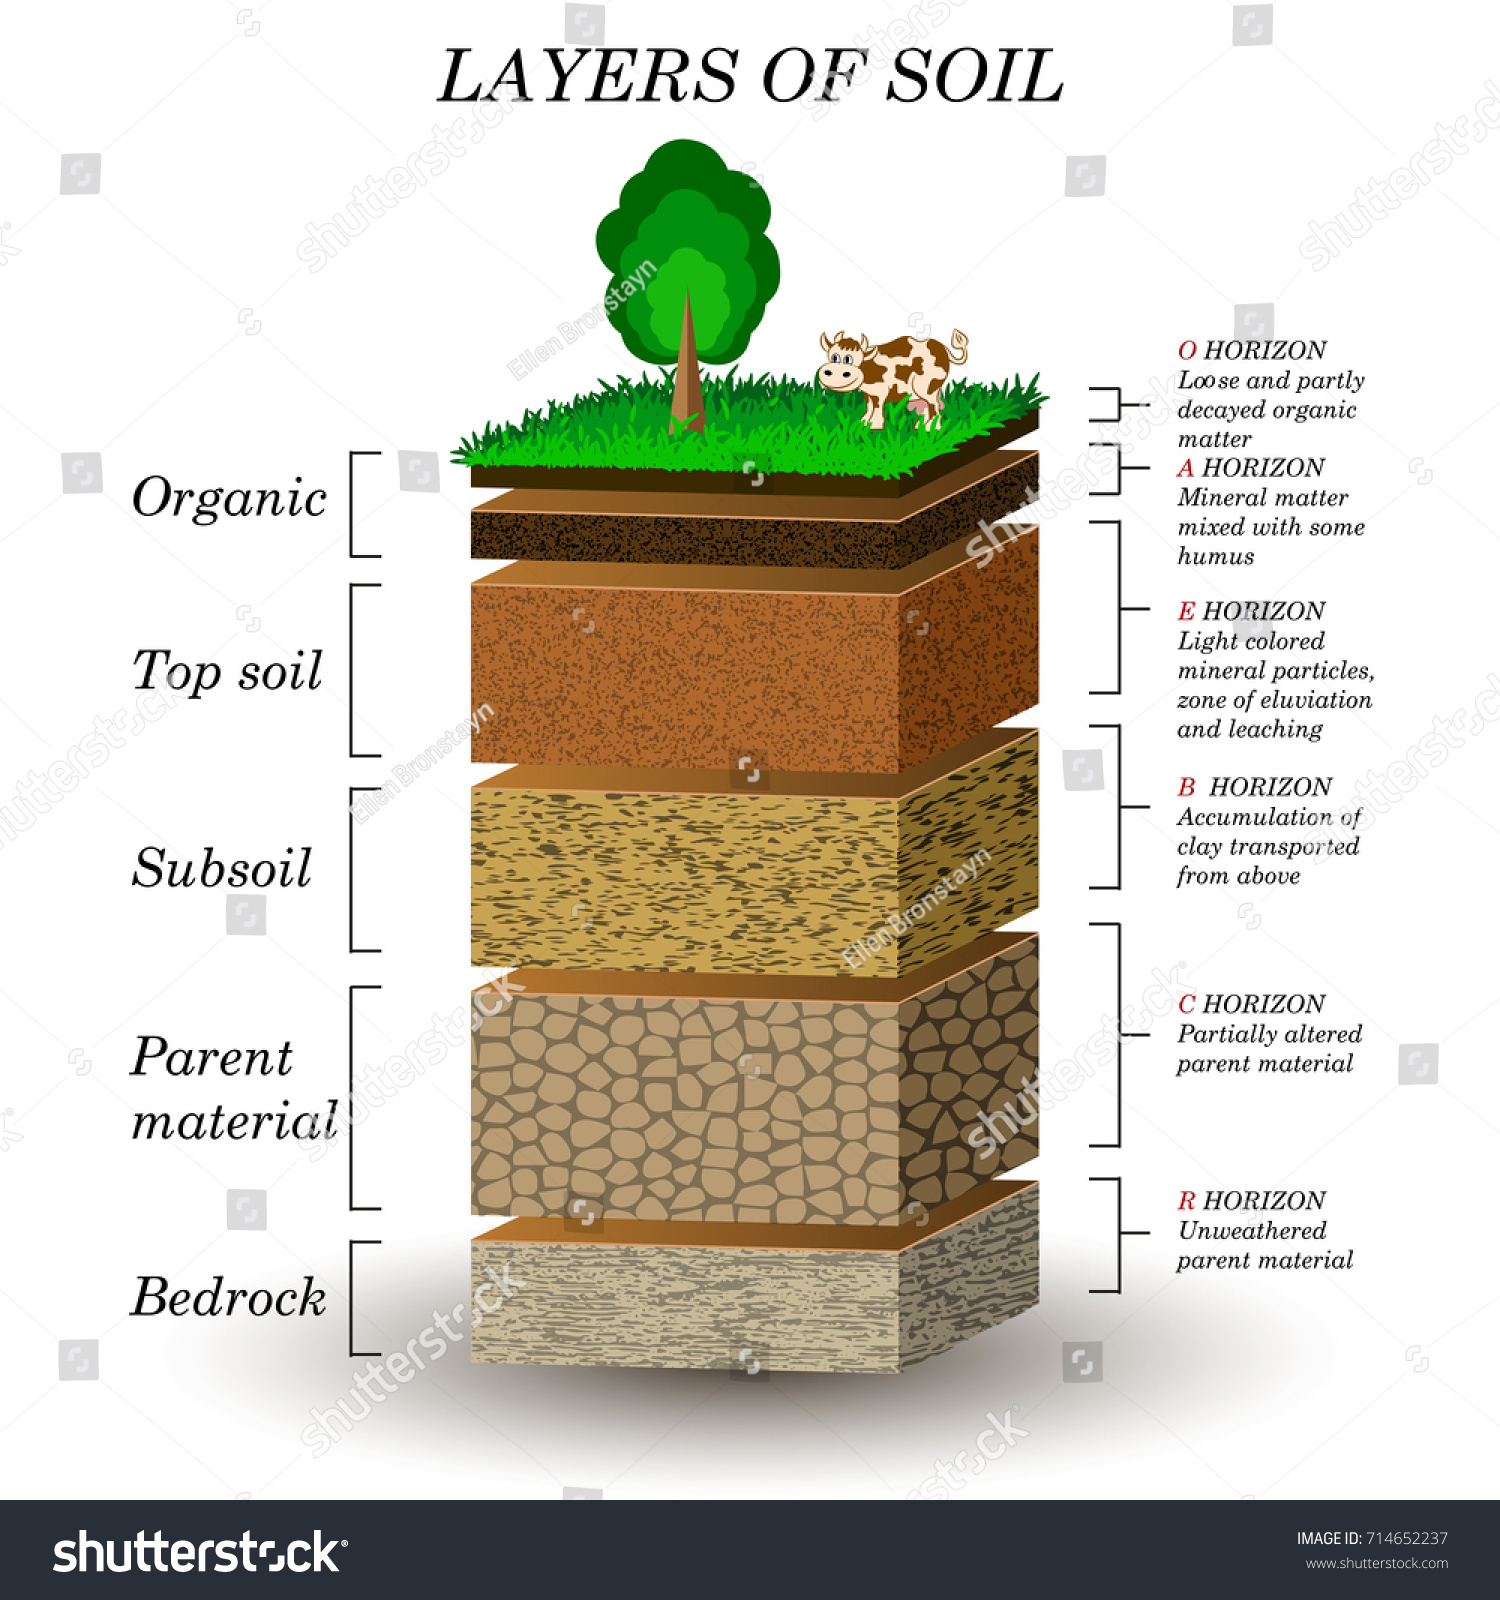 Layers soil education diagram mineral particles stock for What are the different layers of soil